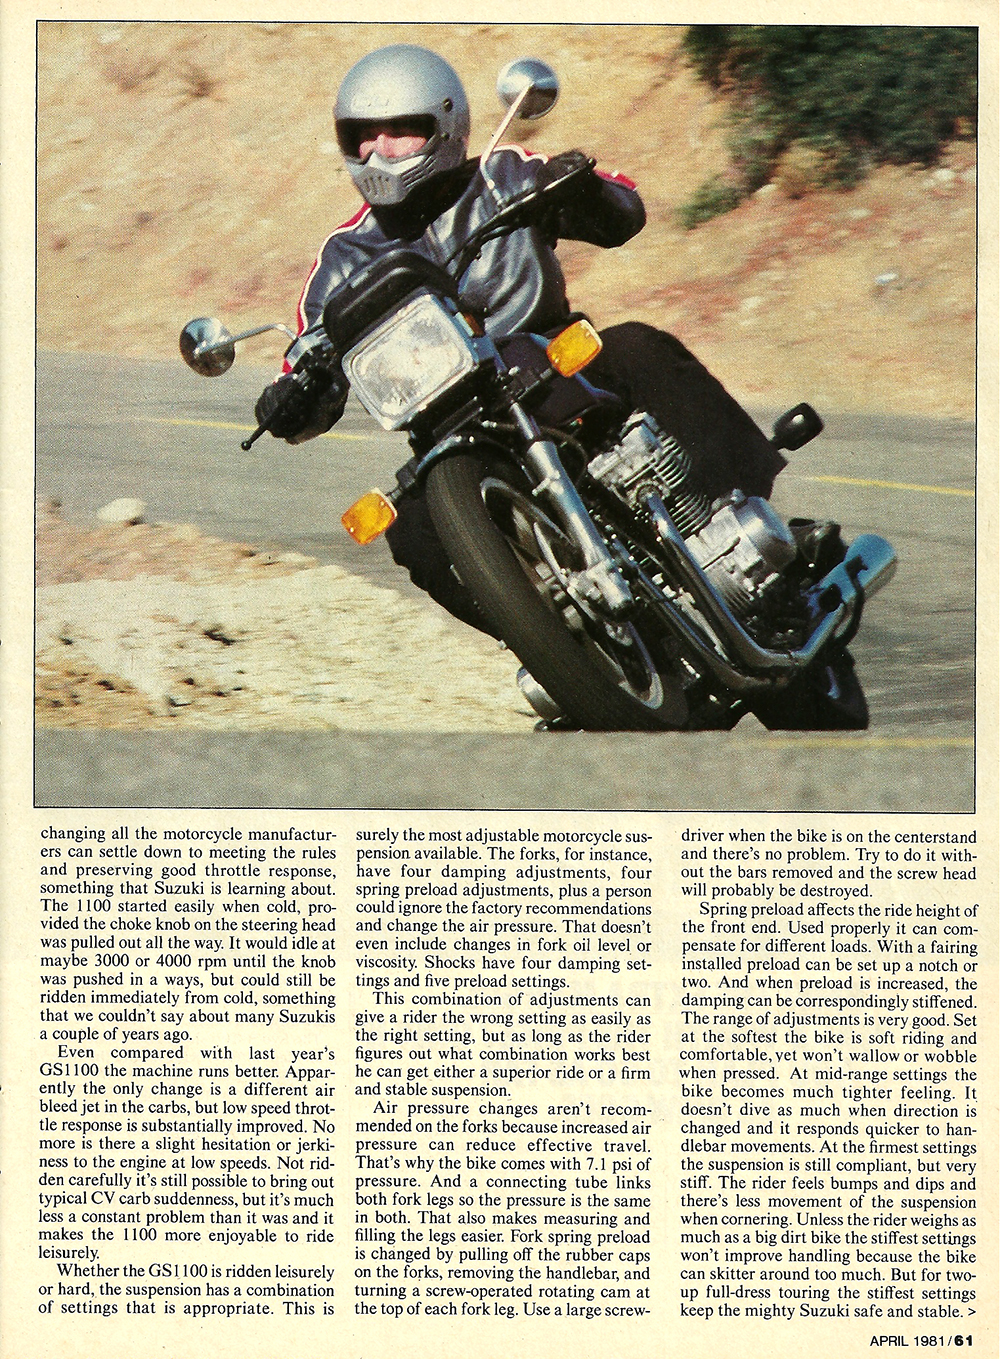 1981 Suzuki GS1100E road test 3.jpg